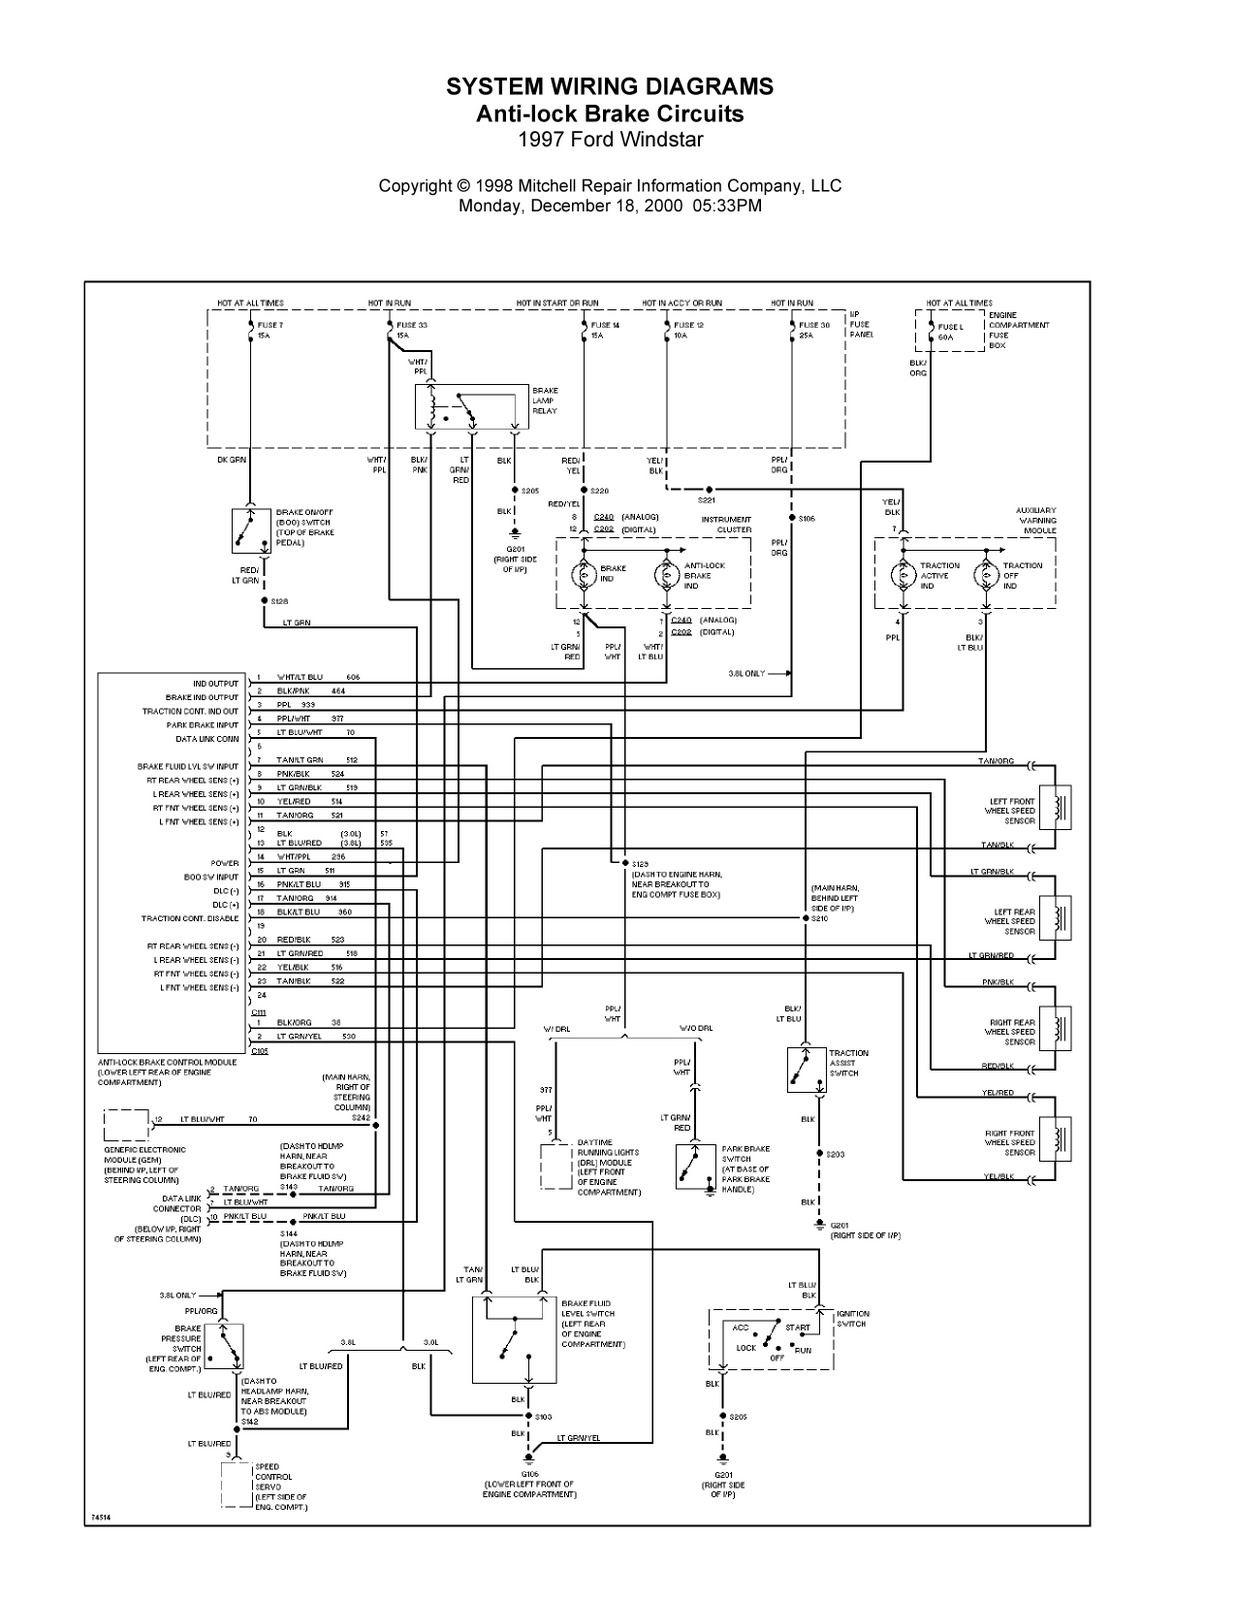 Ford Wiring Diagrams Ford Windstar System Wiring Diagrams Anti Lock Brake Circuits